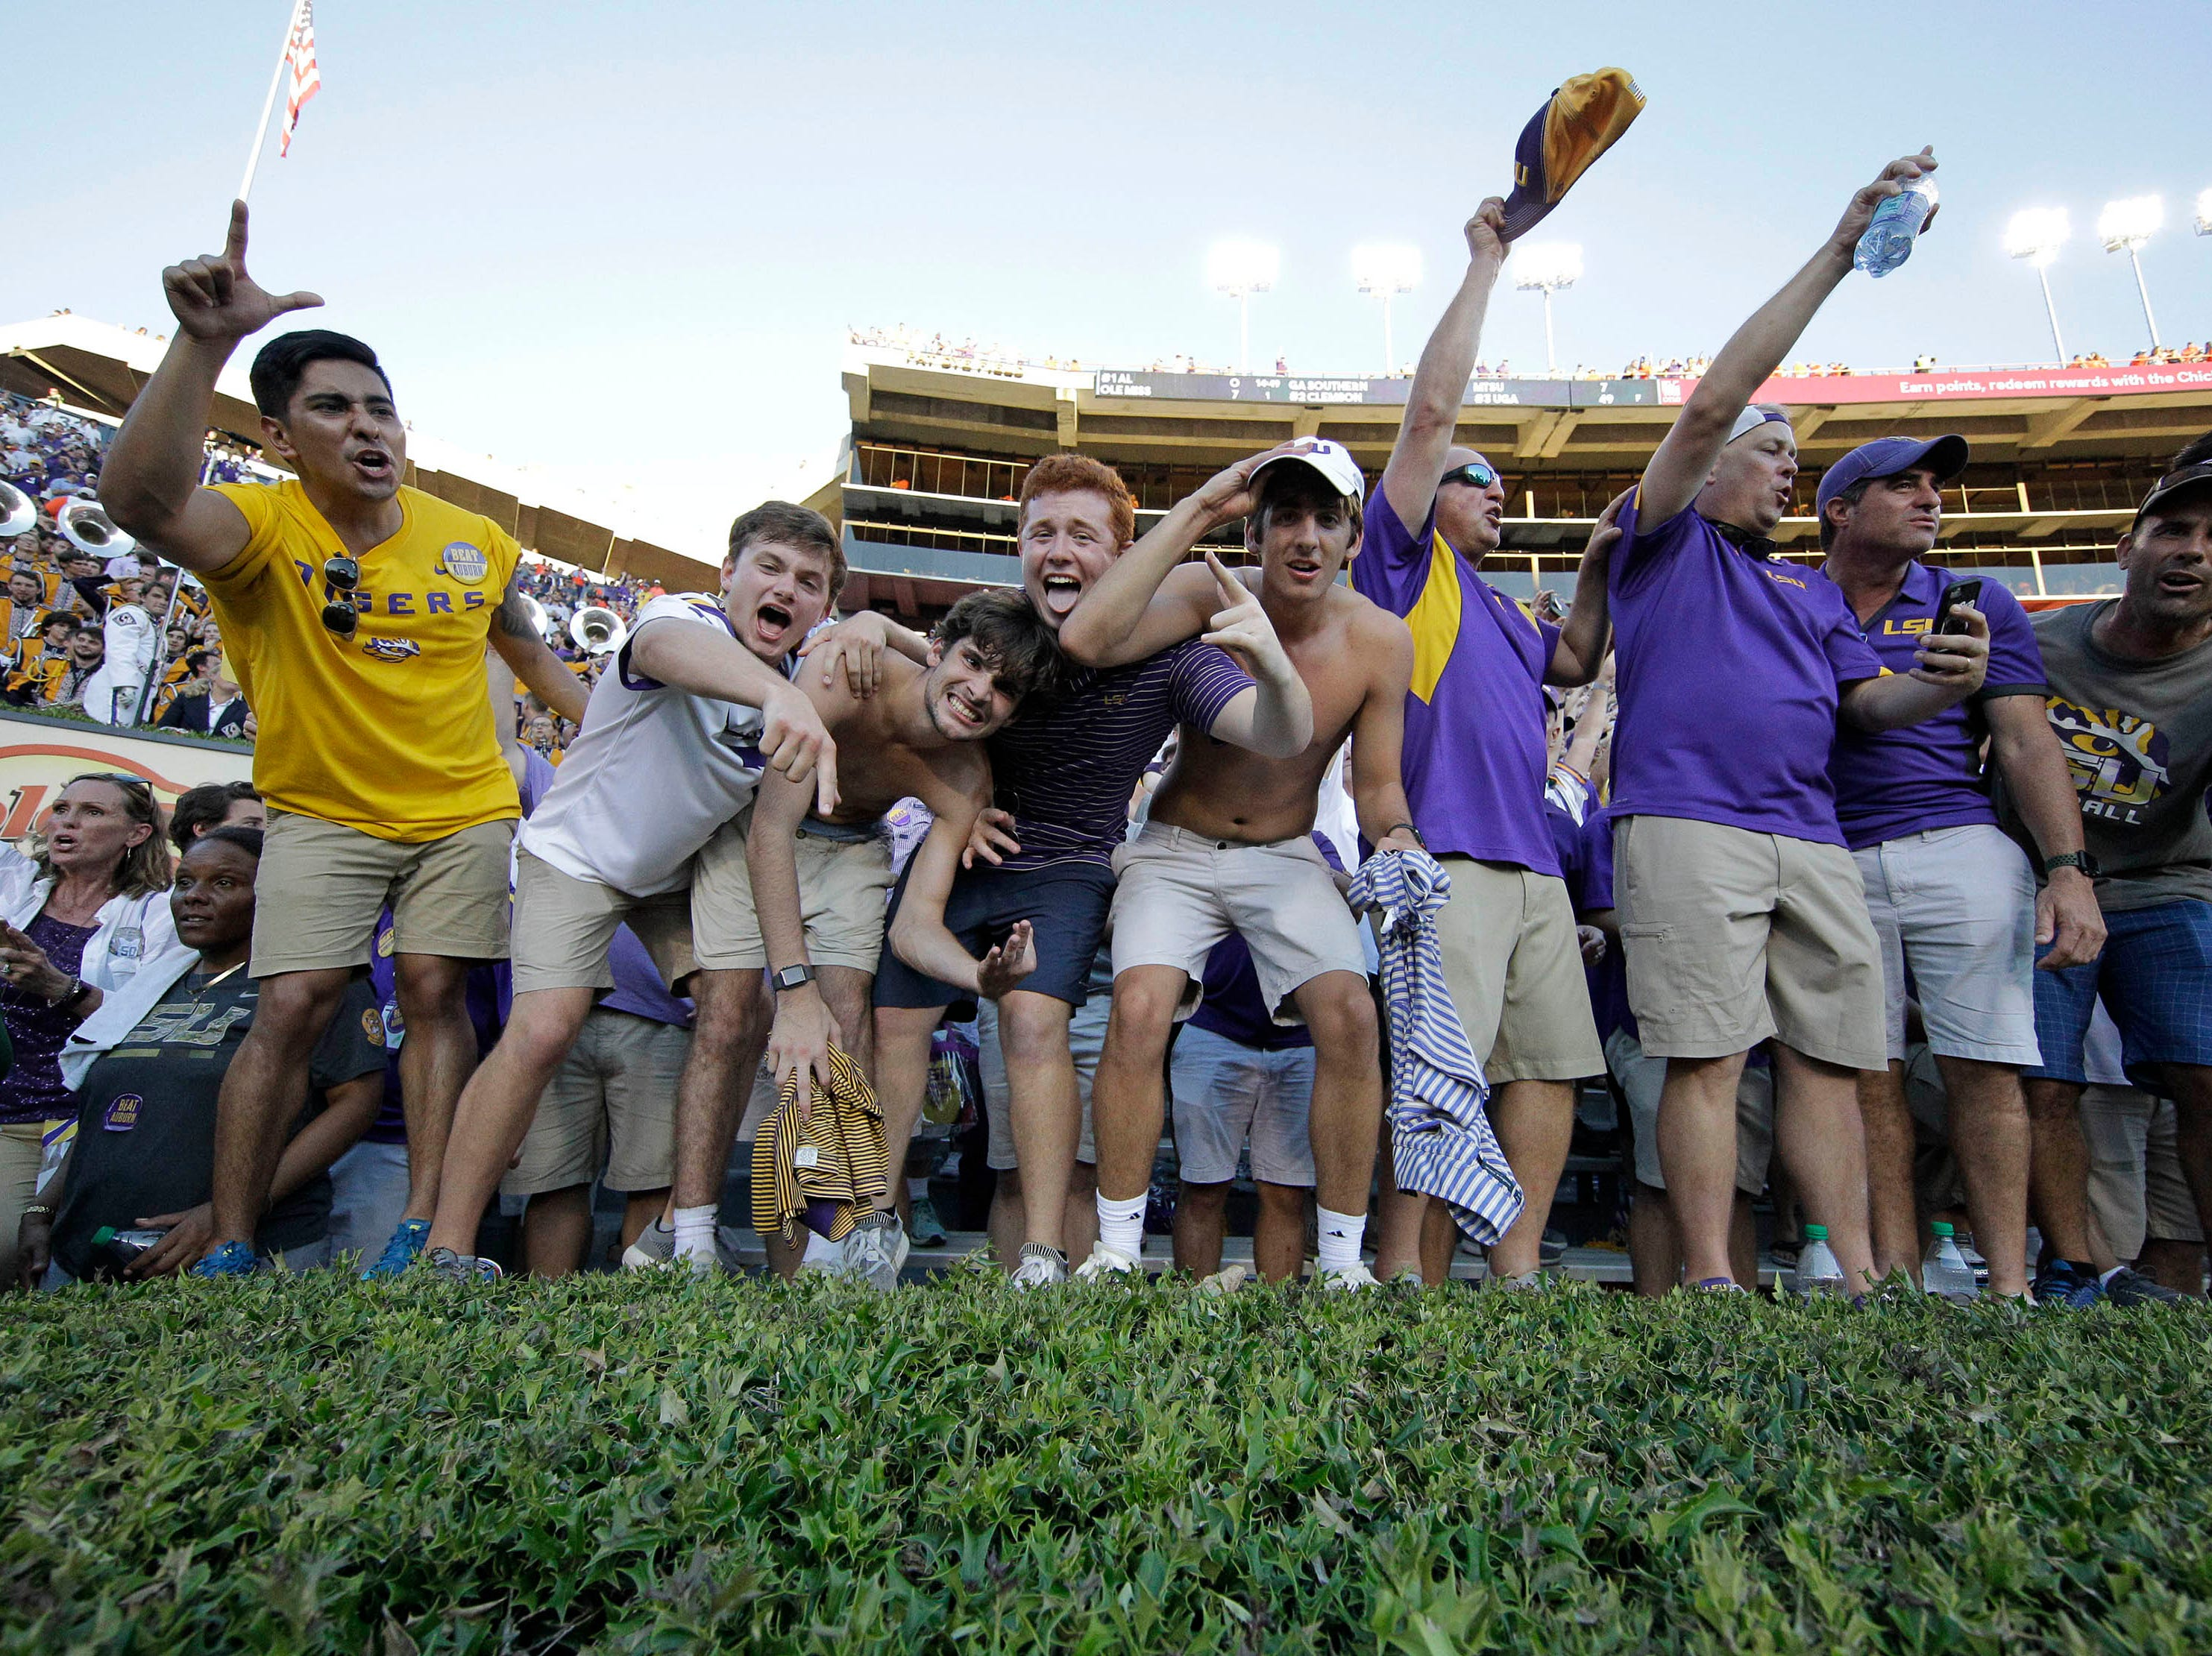 Week 3: LSU Tigers fans celebrate after LSU beat the Auburn Tigers 22-21 at Jordan-Hare Stadium.